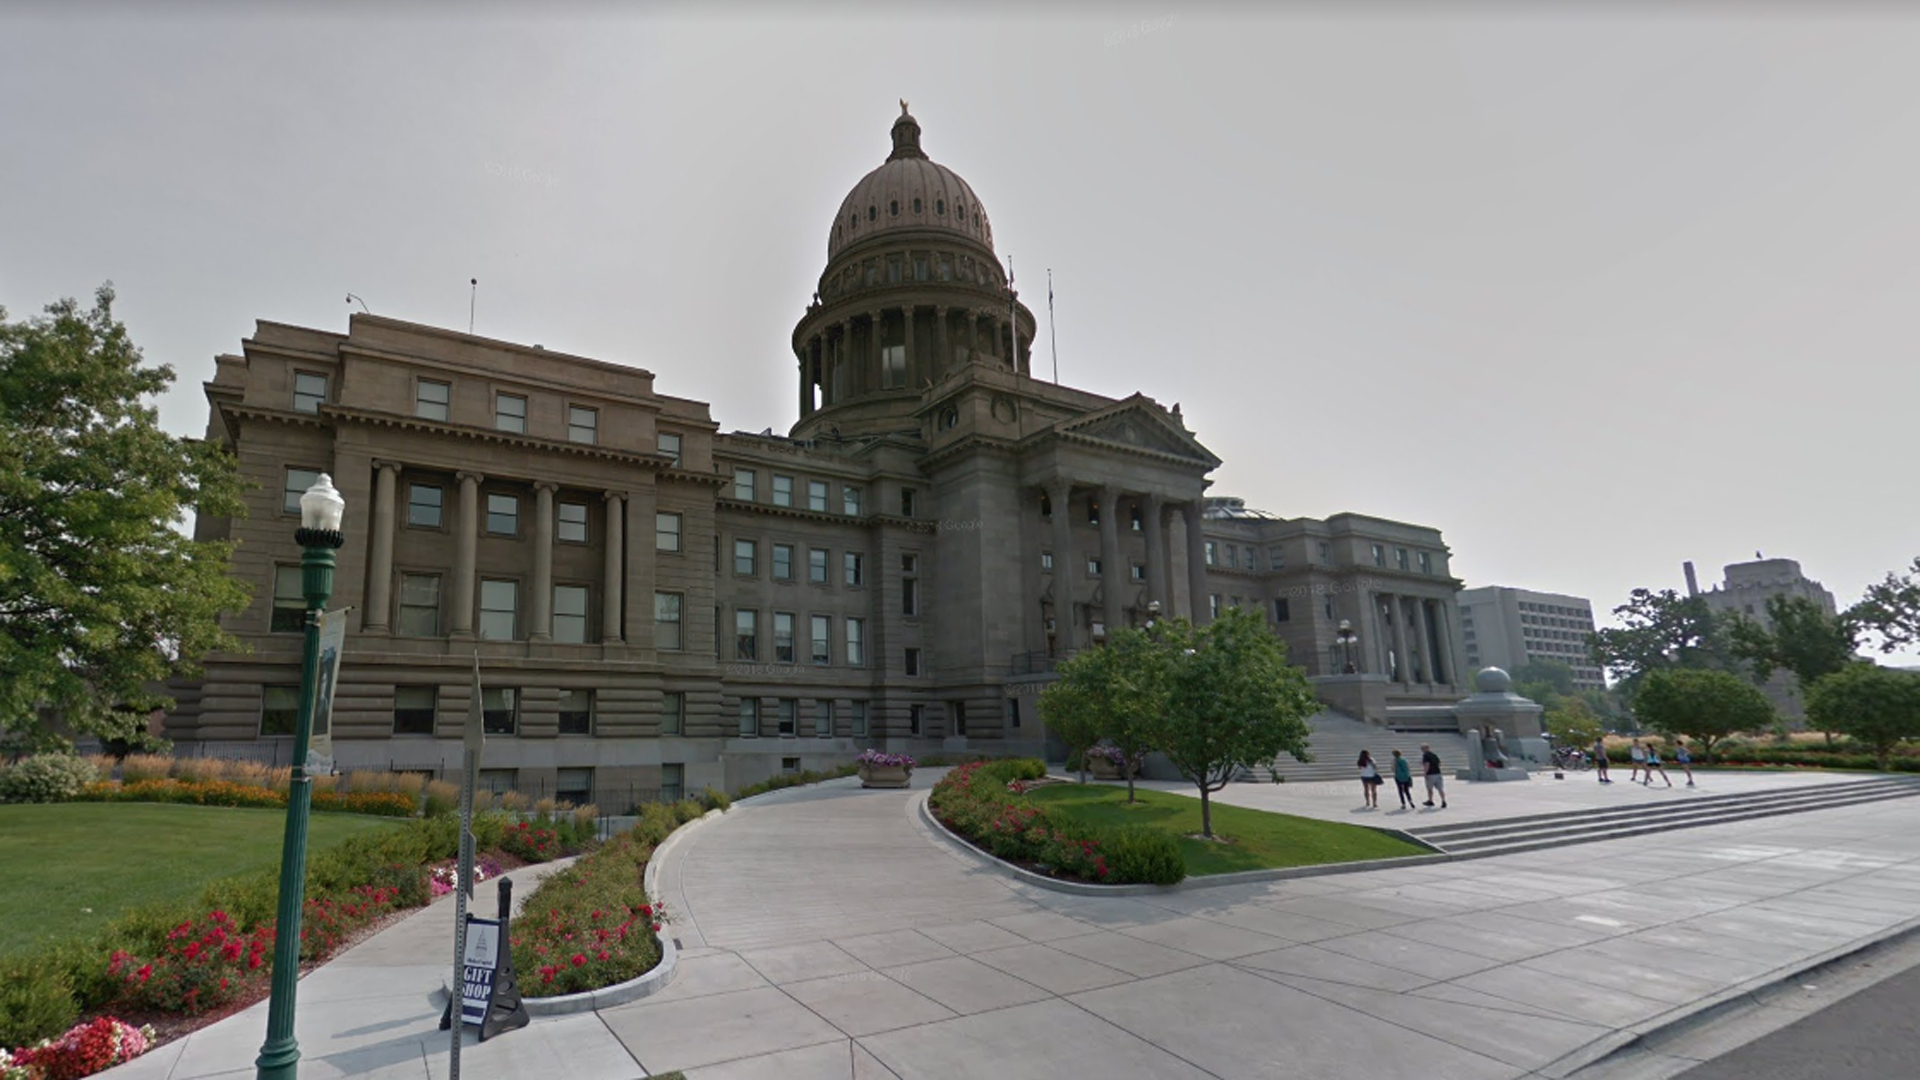 The Idaho State Capitol building in Boise is seen in a Google Maps image.